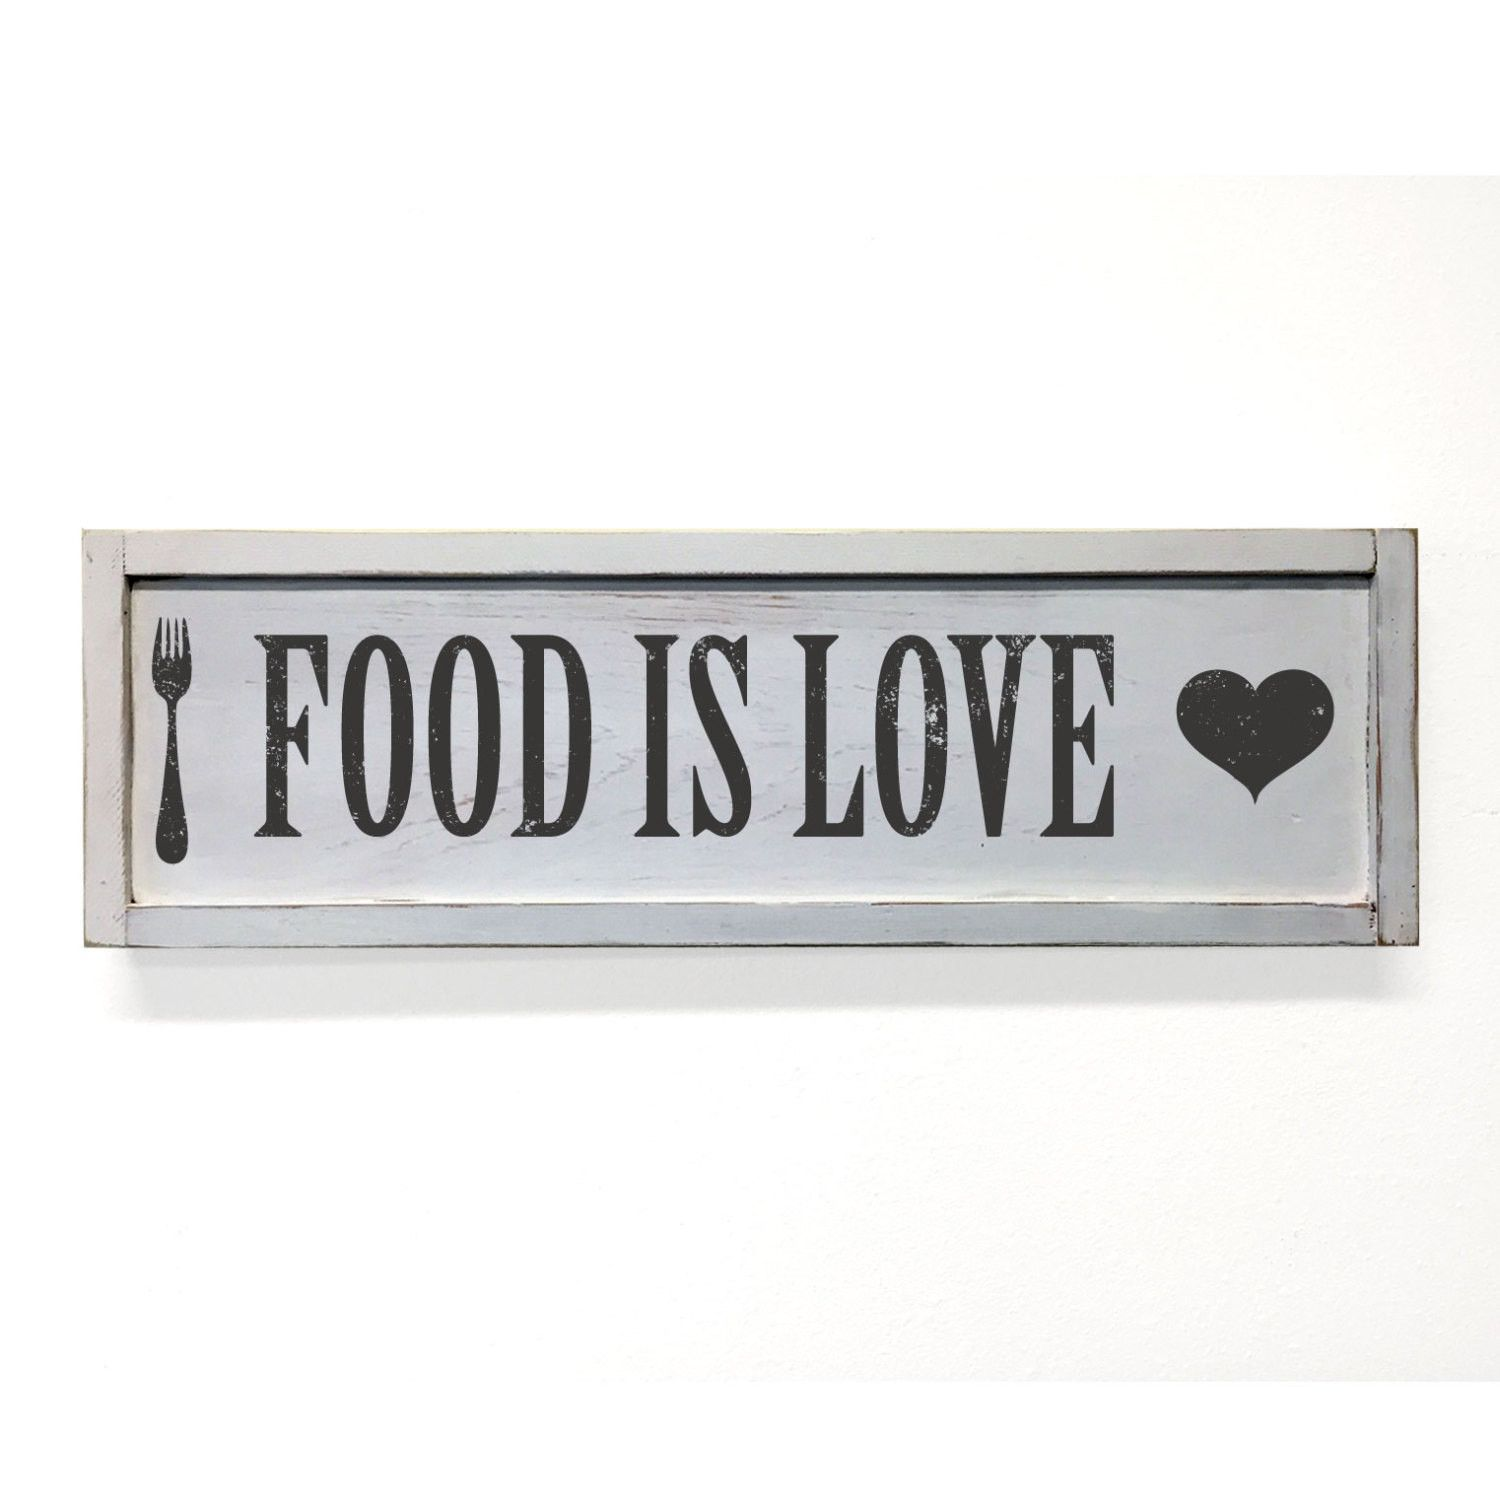 Food is love floater frame wall art sign white x new house